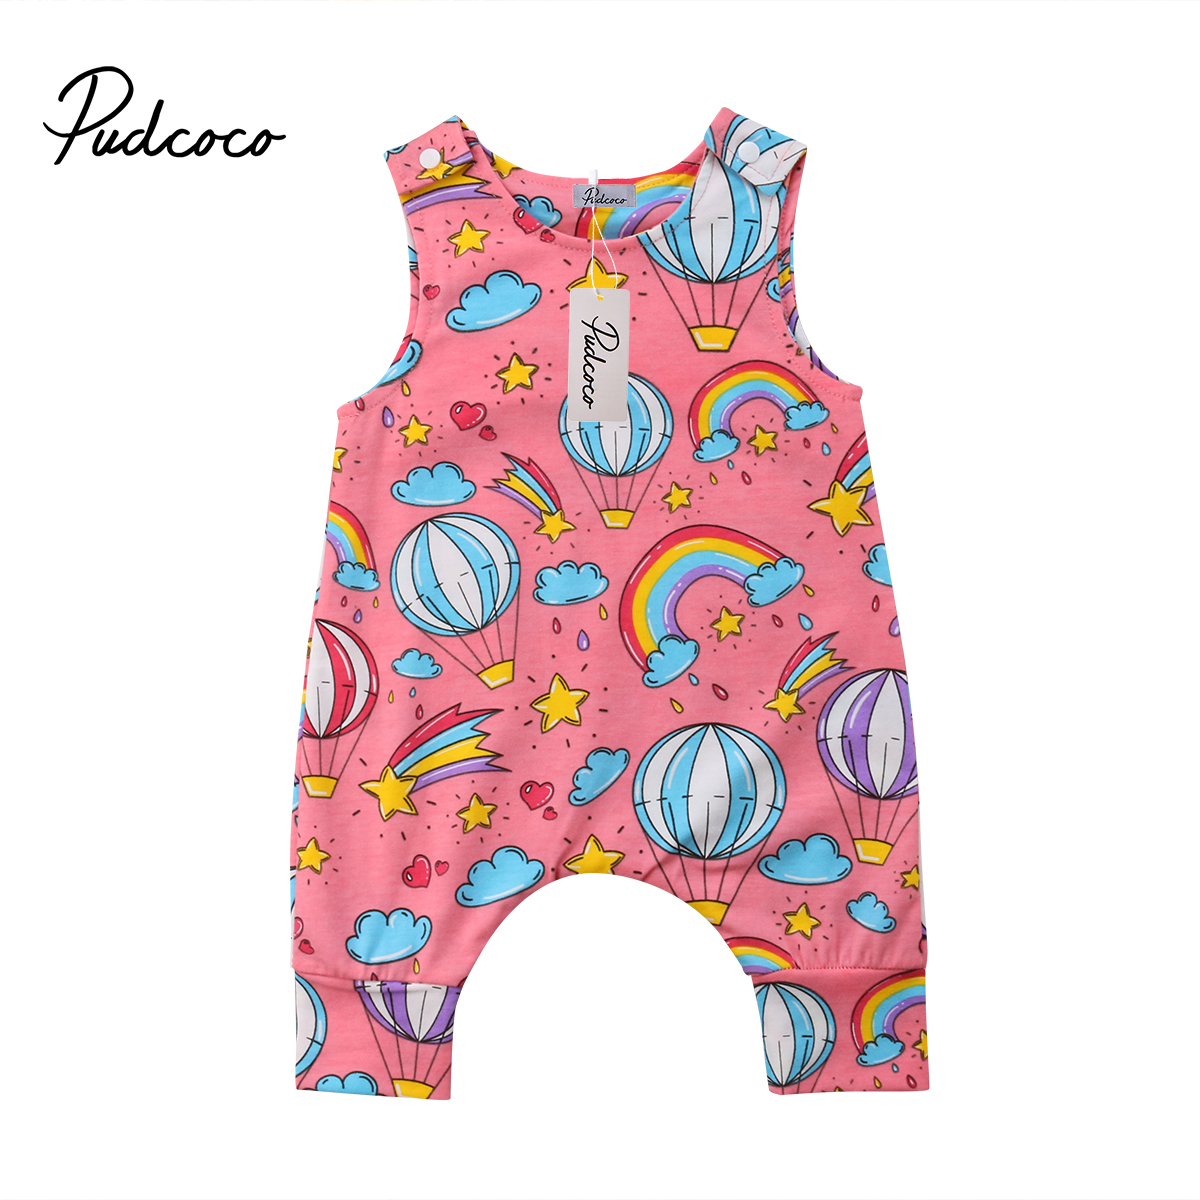 Cotton Newborn Baby Boy Girl Air Balloons Printing One-piece Romper Babies Sleeveless  Cartoon Playsuit Clothes Outfit